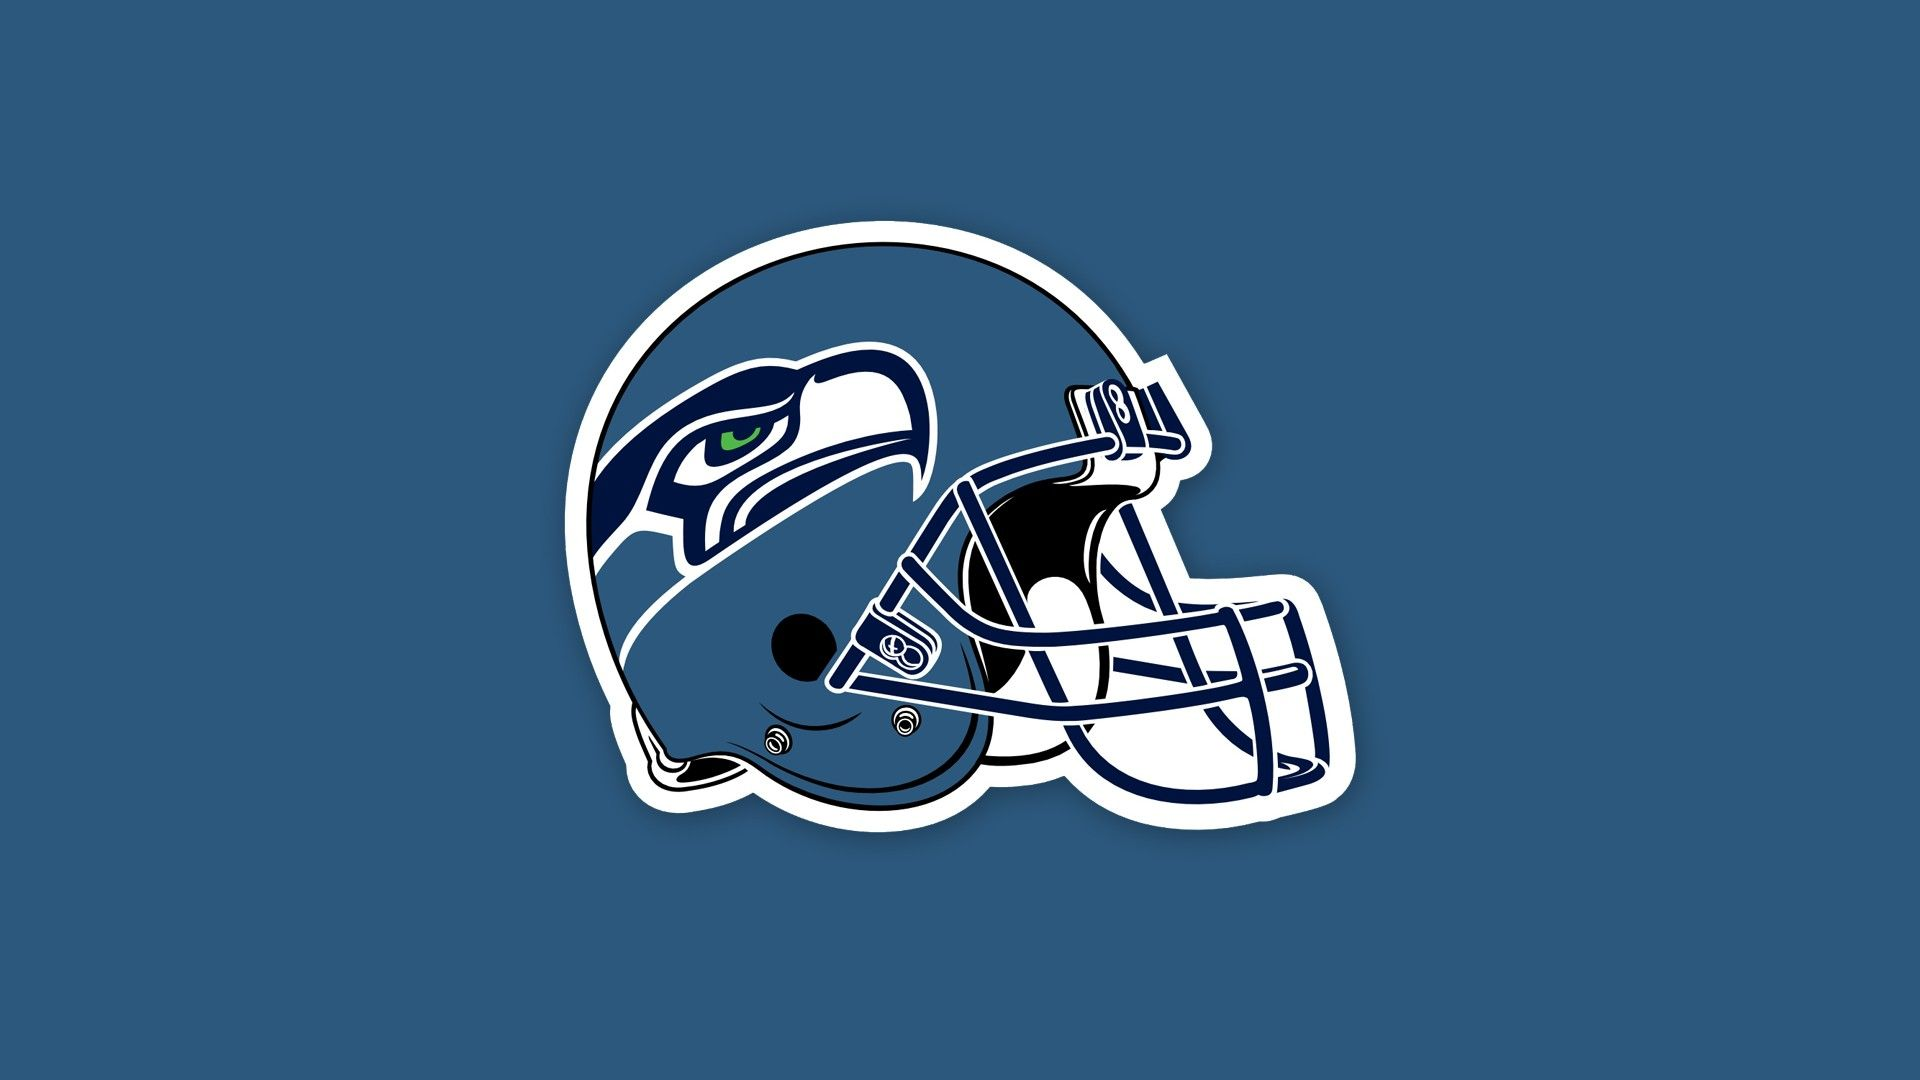 HD Backgrounds Seattle Seahawks (With images) Nfl